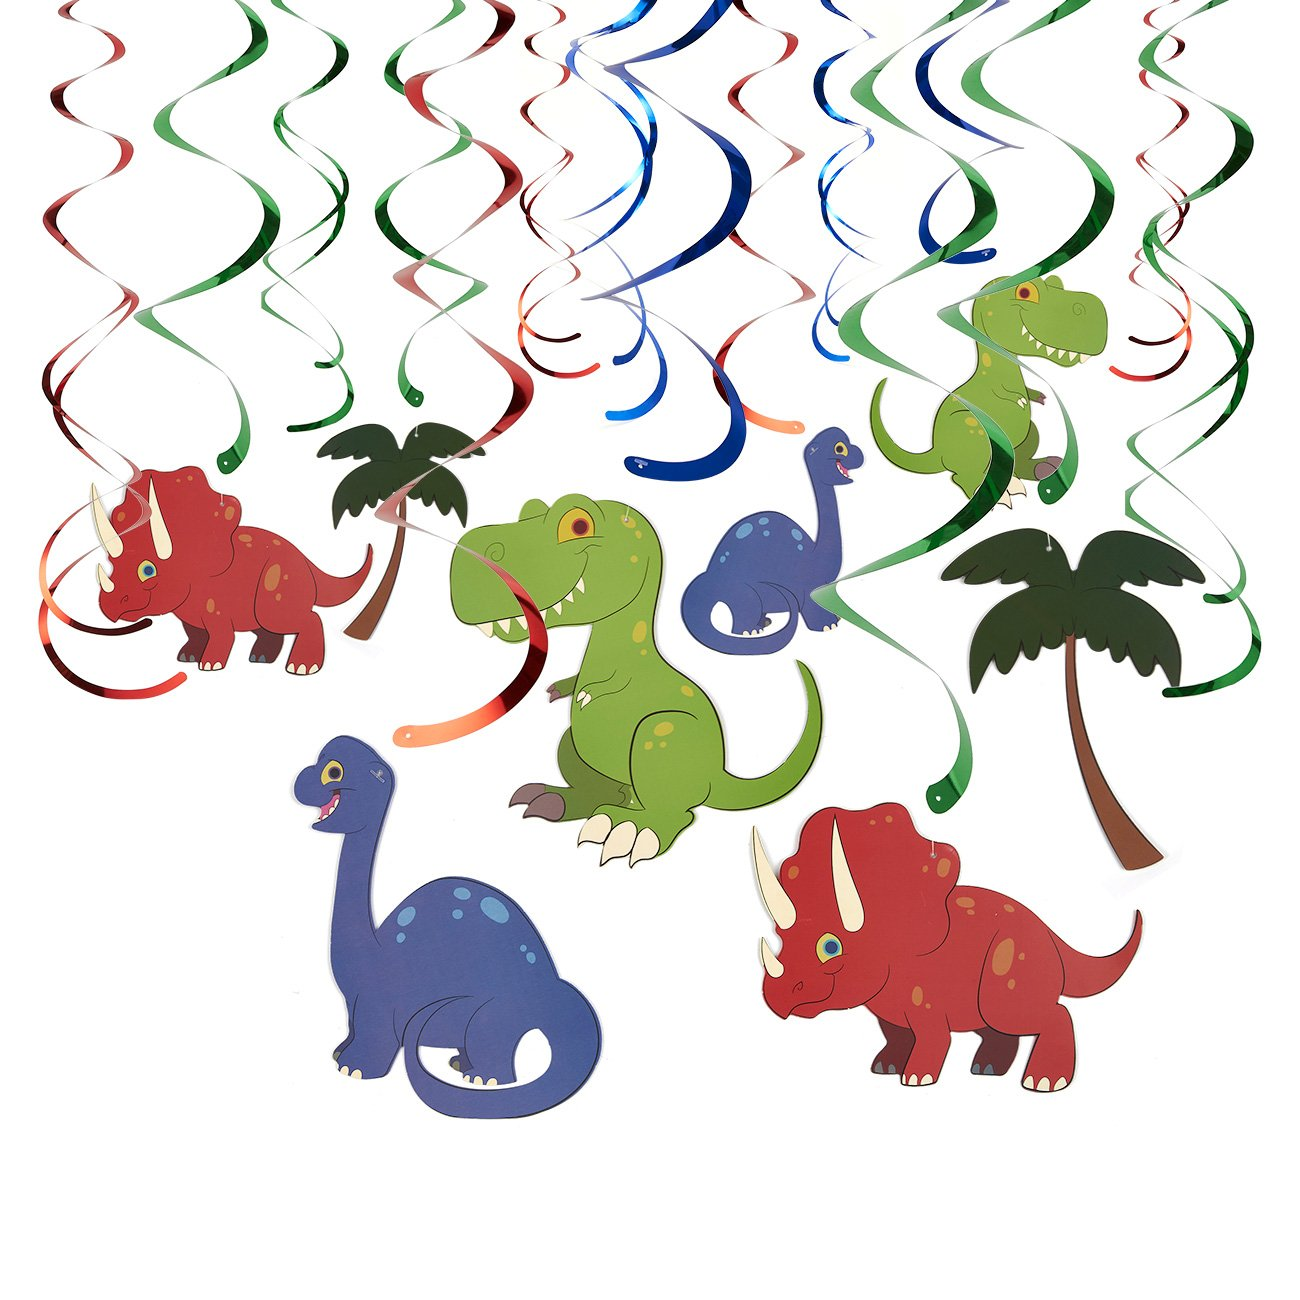 30-Count Swirl Decorations - Dinosaur Birthday Party Decorations, Party Streamers, Hanging Dino Decor Whirls for Kids, 4 Assorted Designs - Hanging Length: 34.25 to 36.25 inches